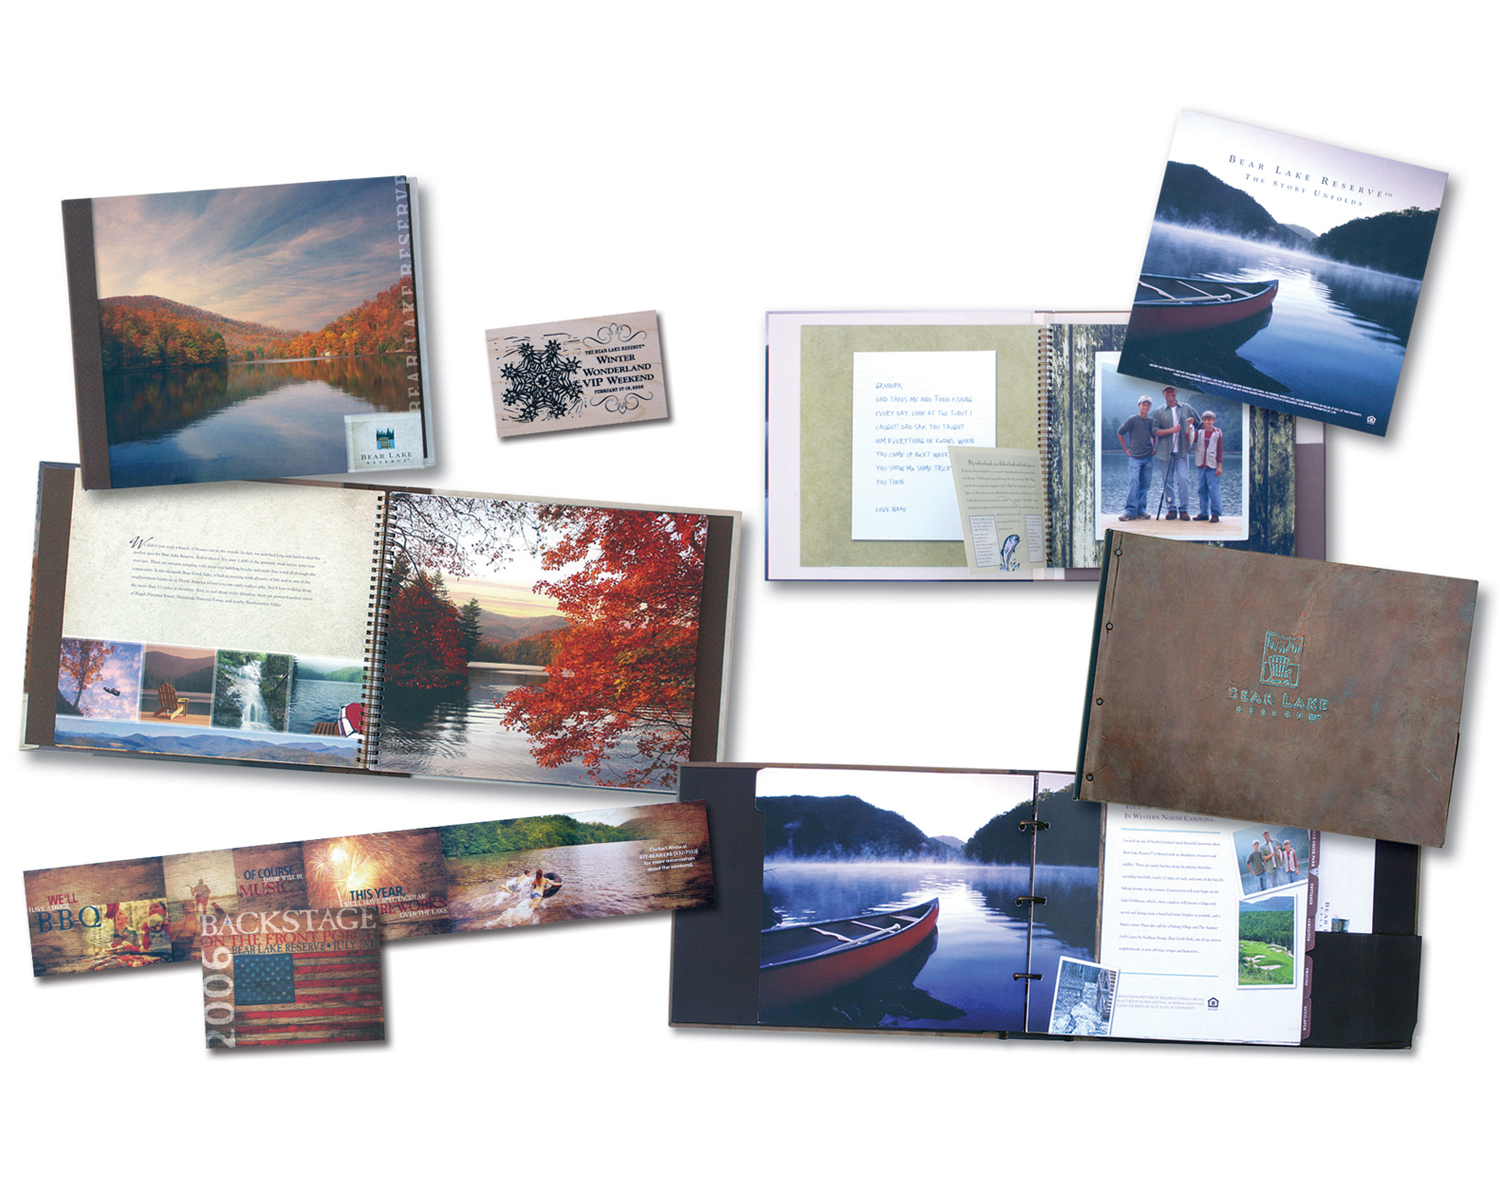 Complete Branding,Marketing, and Advertising for Bear Lake Reserve in Tuckaseegee, North Carolina